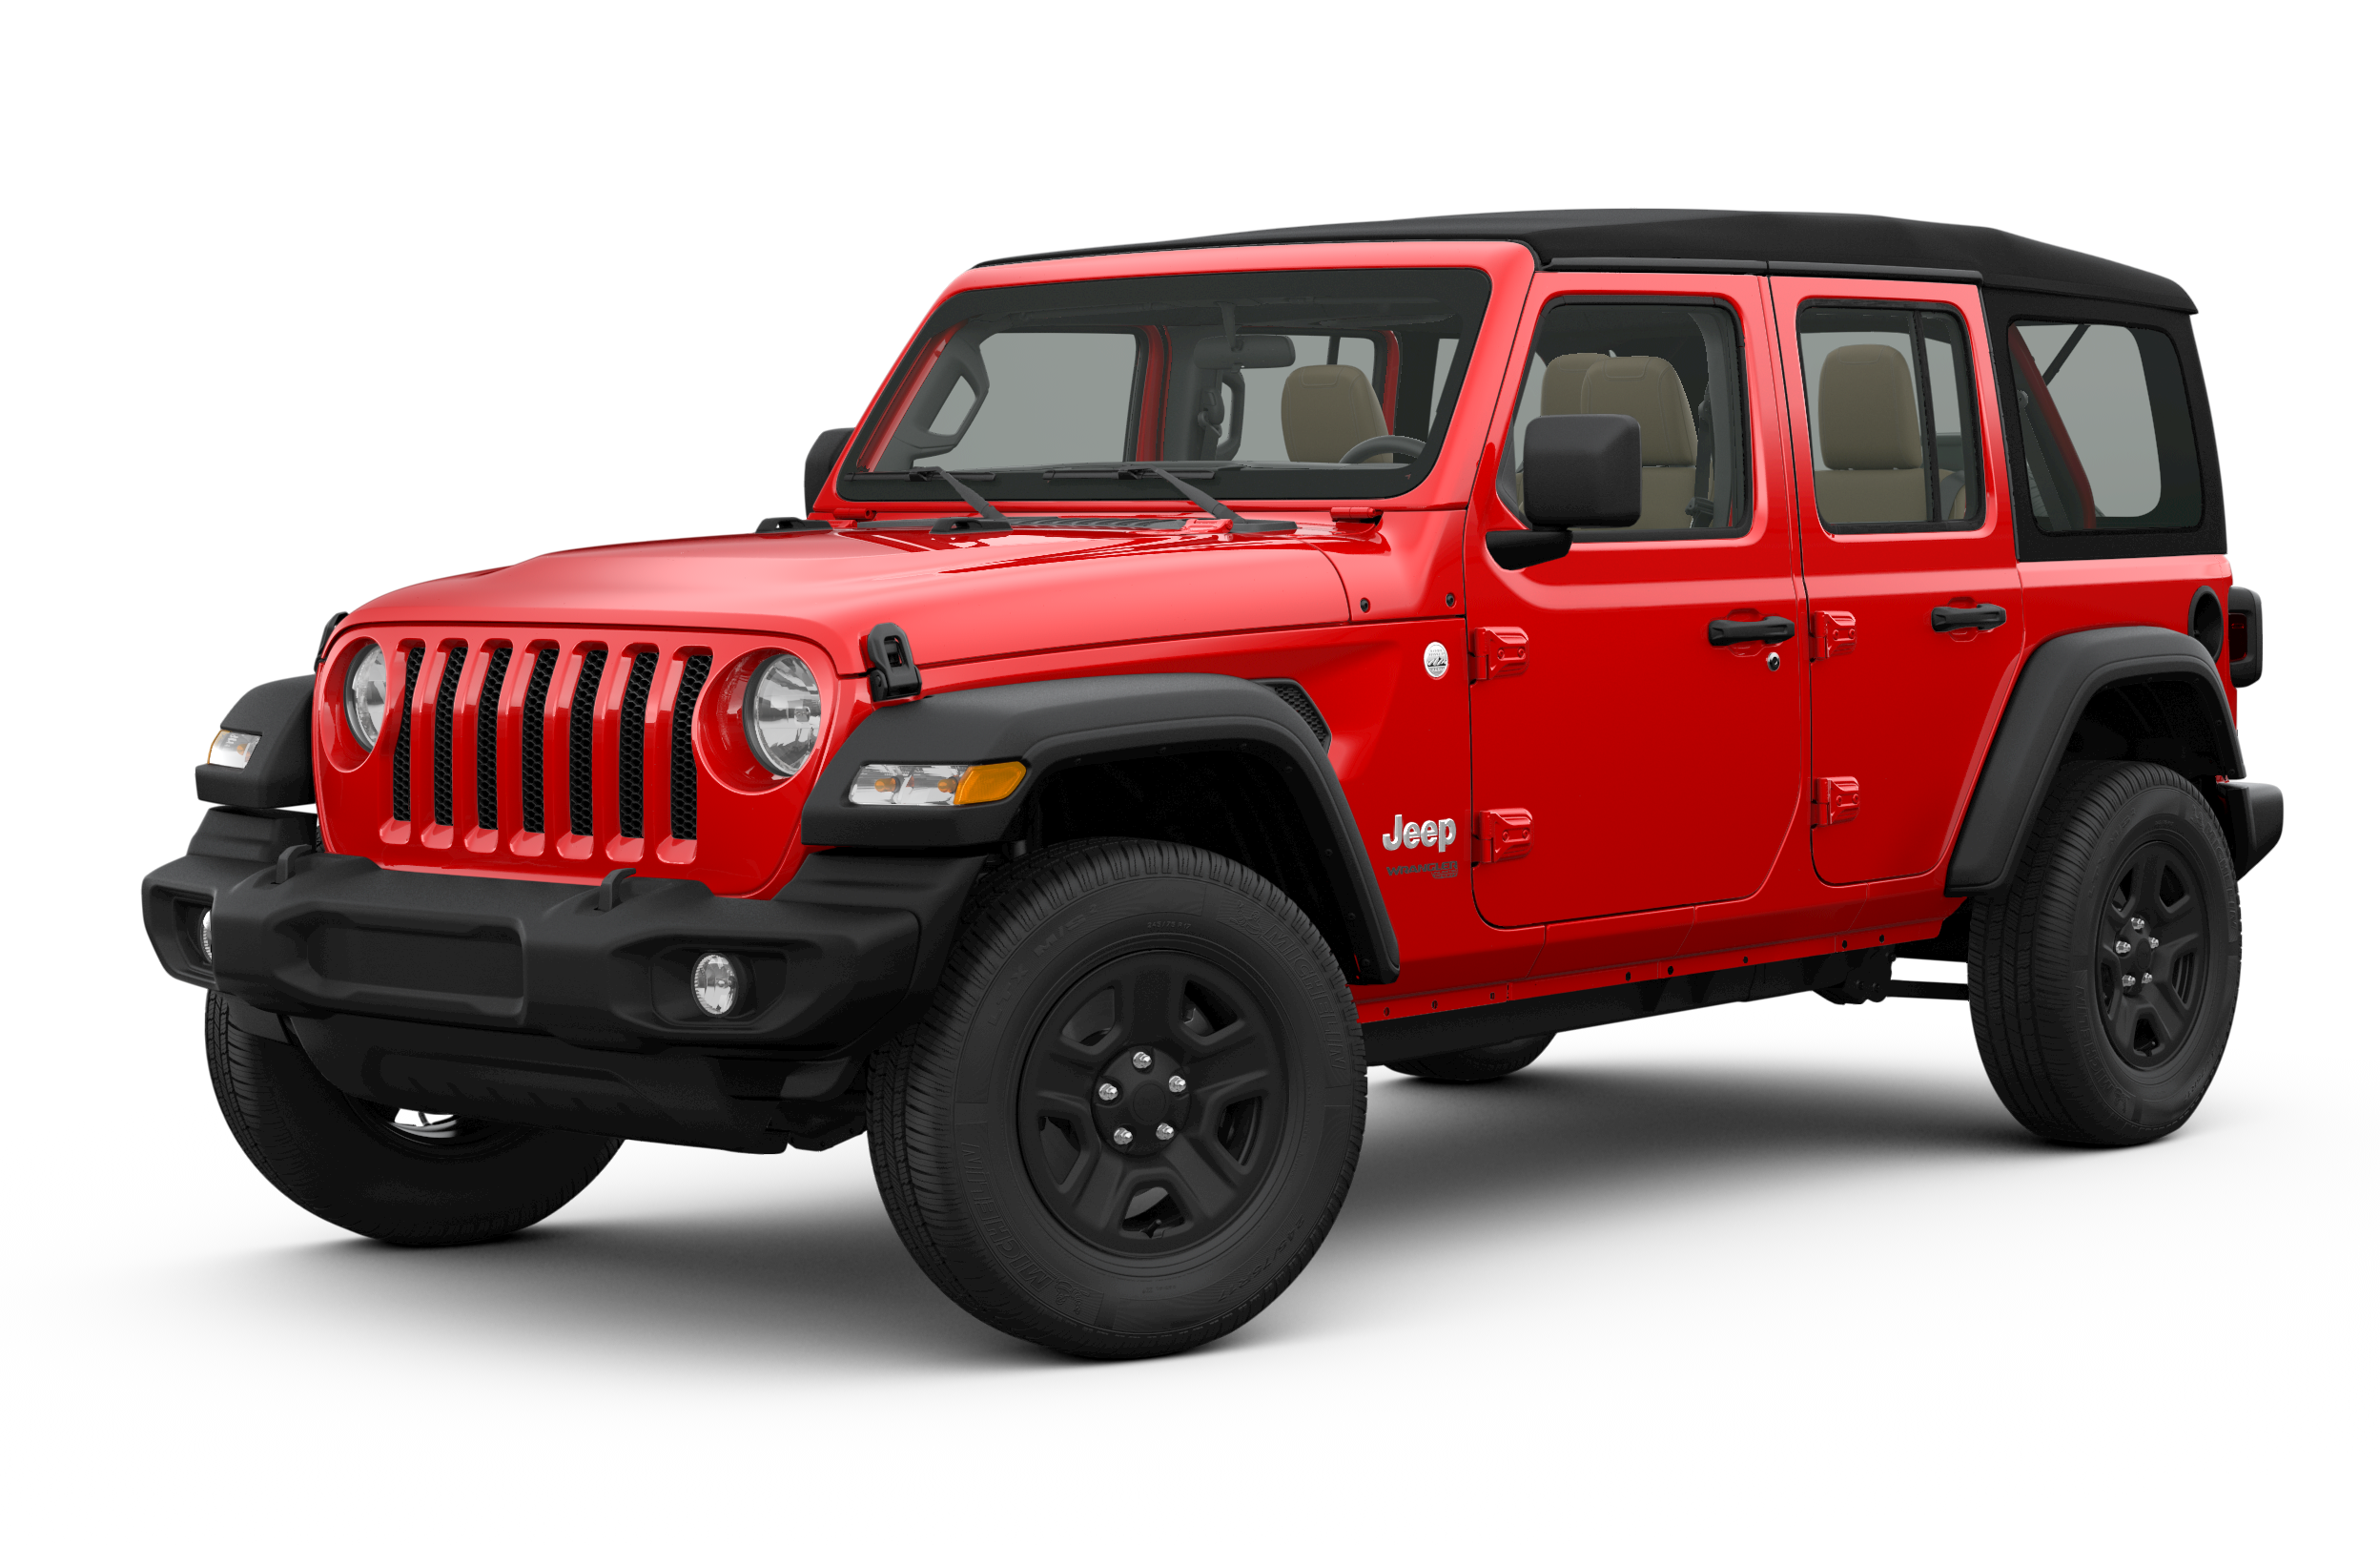 2007 Jeep Wrangler Suspension Diagrams Wiring Front Diagram Parts Accessories By The House Of 2000 Jk